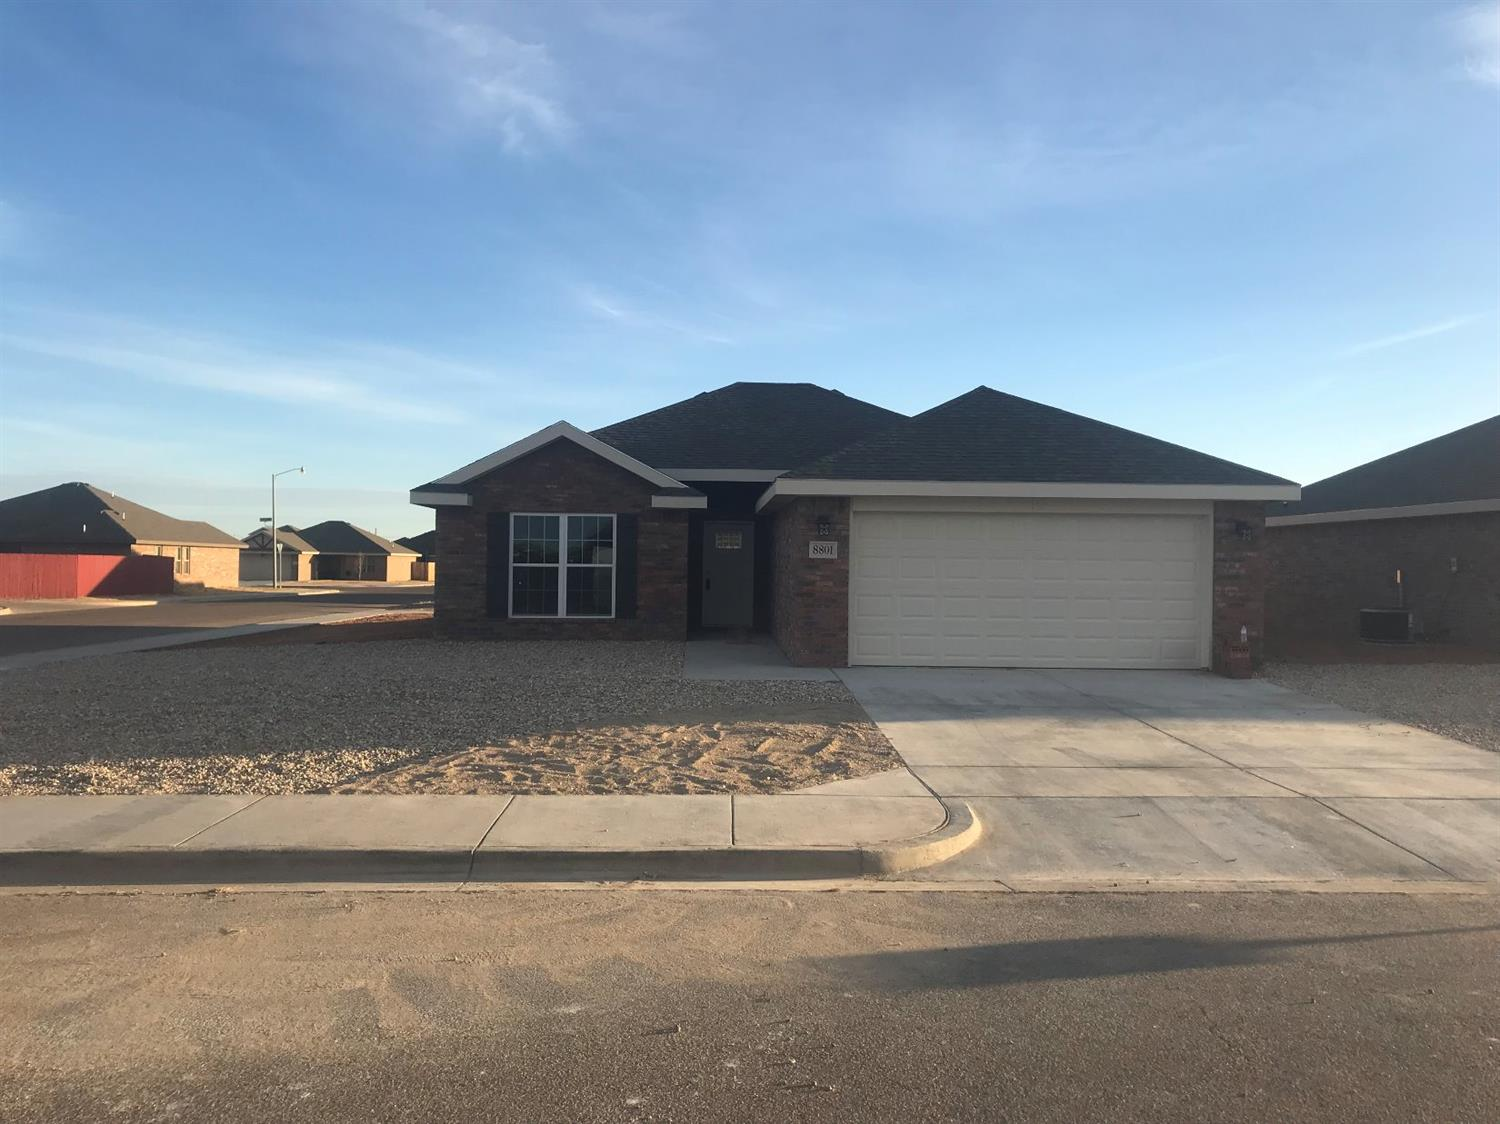 8814 16th Street, Lubbock in Lubbock County, TX 79416 Home for Sale